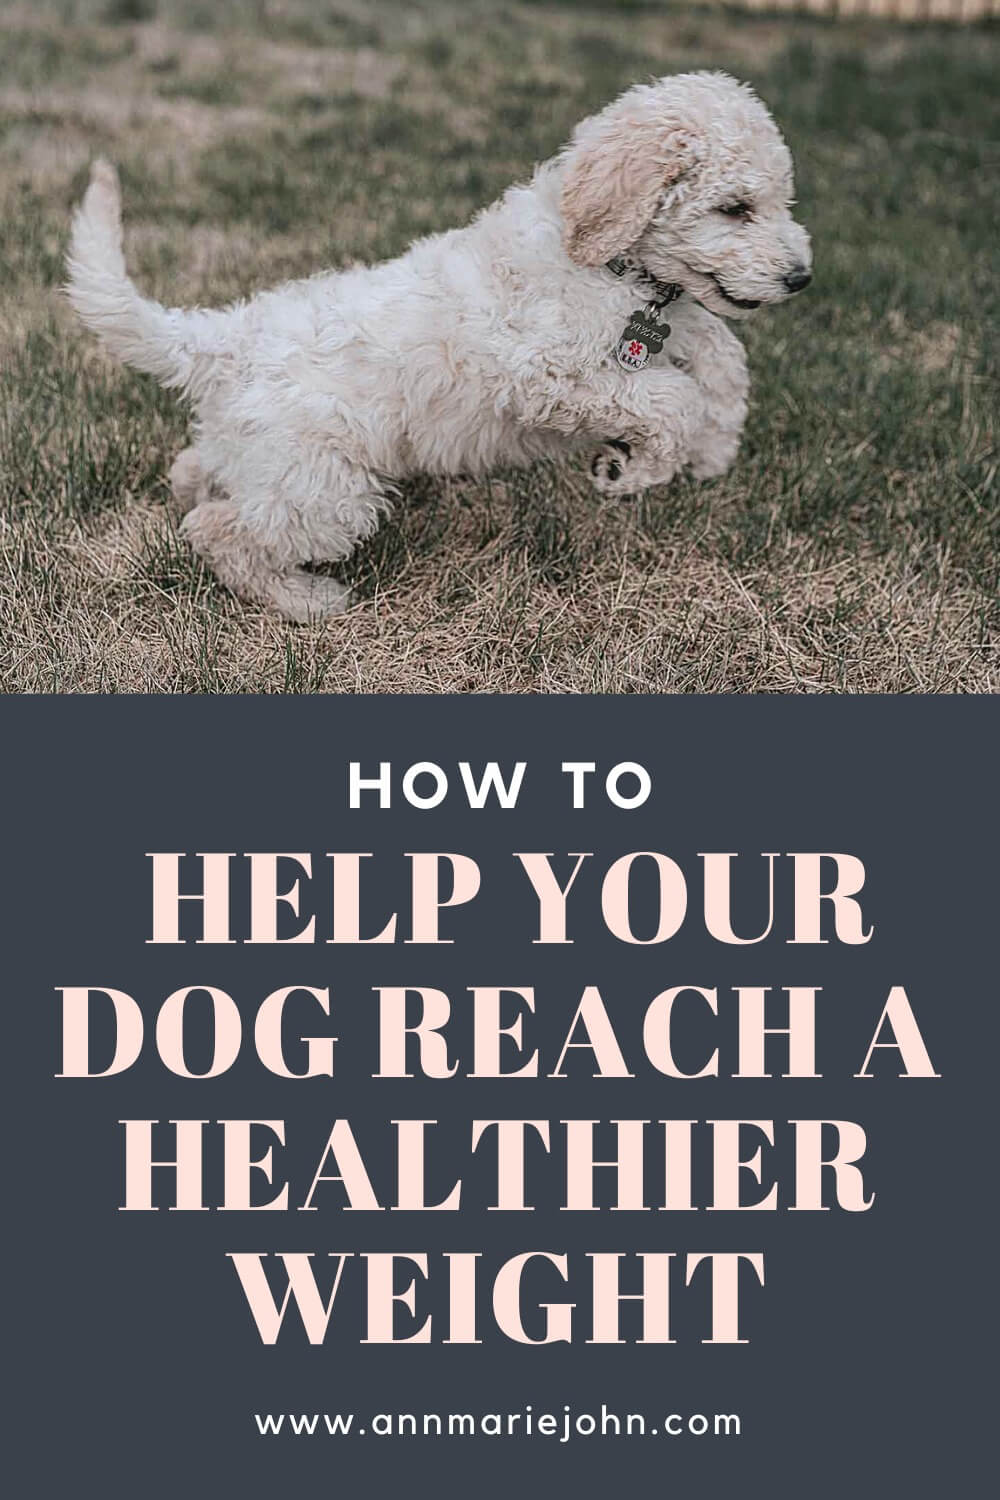 How to Help Your Dog Reach a Healthier Weight